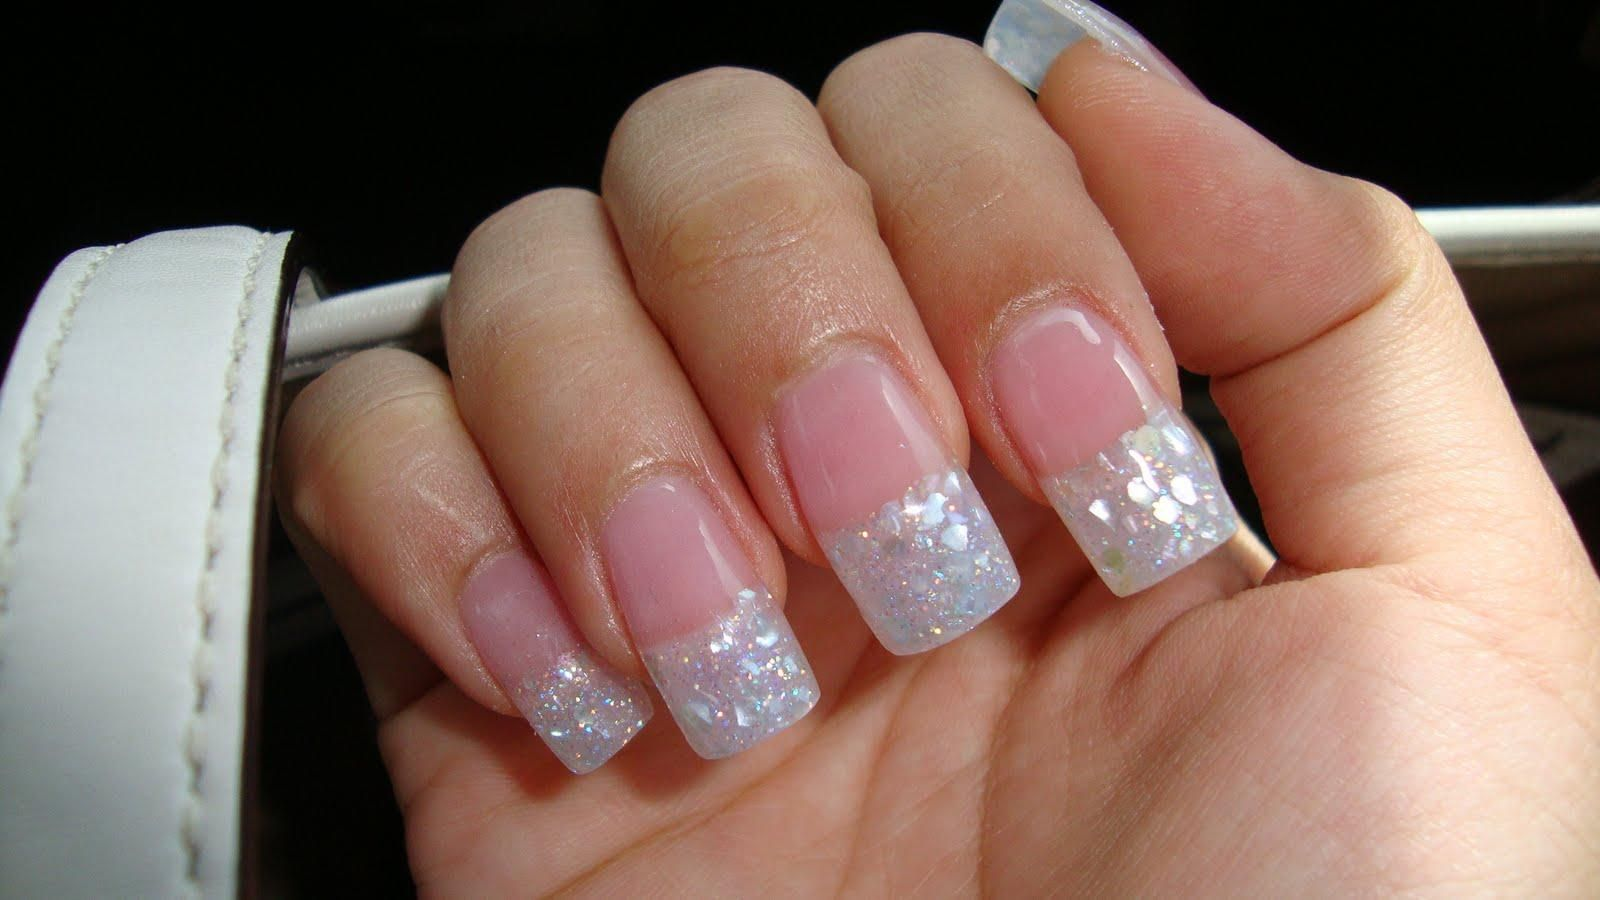 29 glitter acrylic nail art designs ideas design trends double french tip nail designs with glitter nail designs glitter nail art ideas prinsesfo Image collections